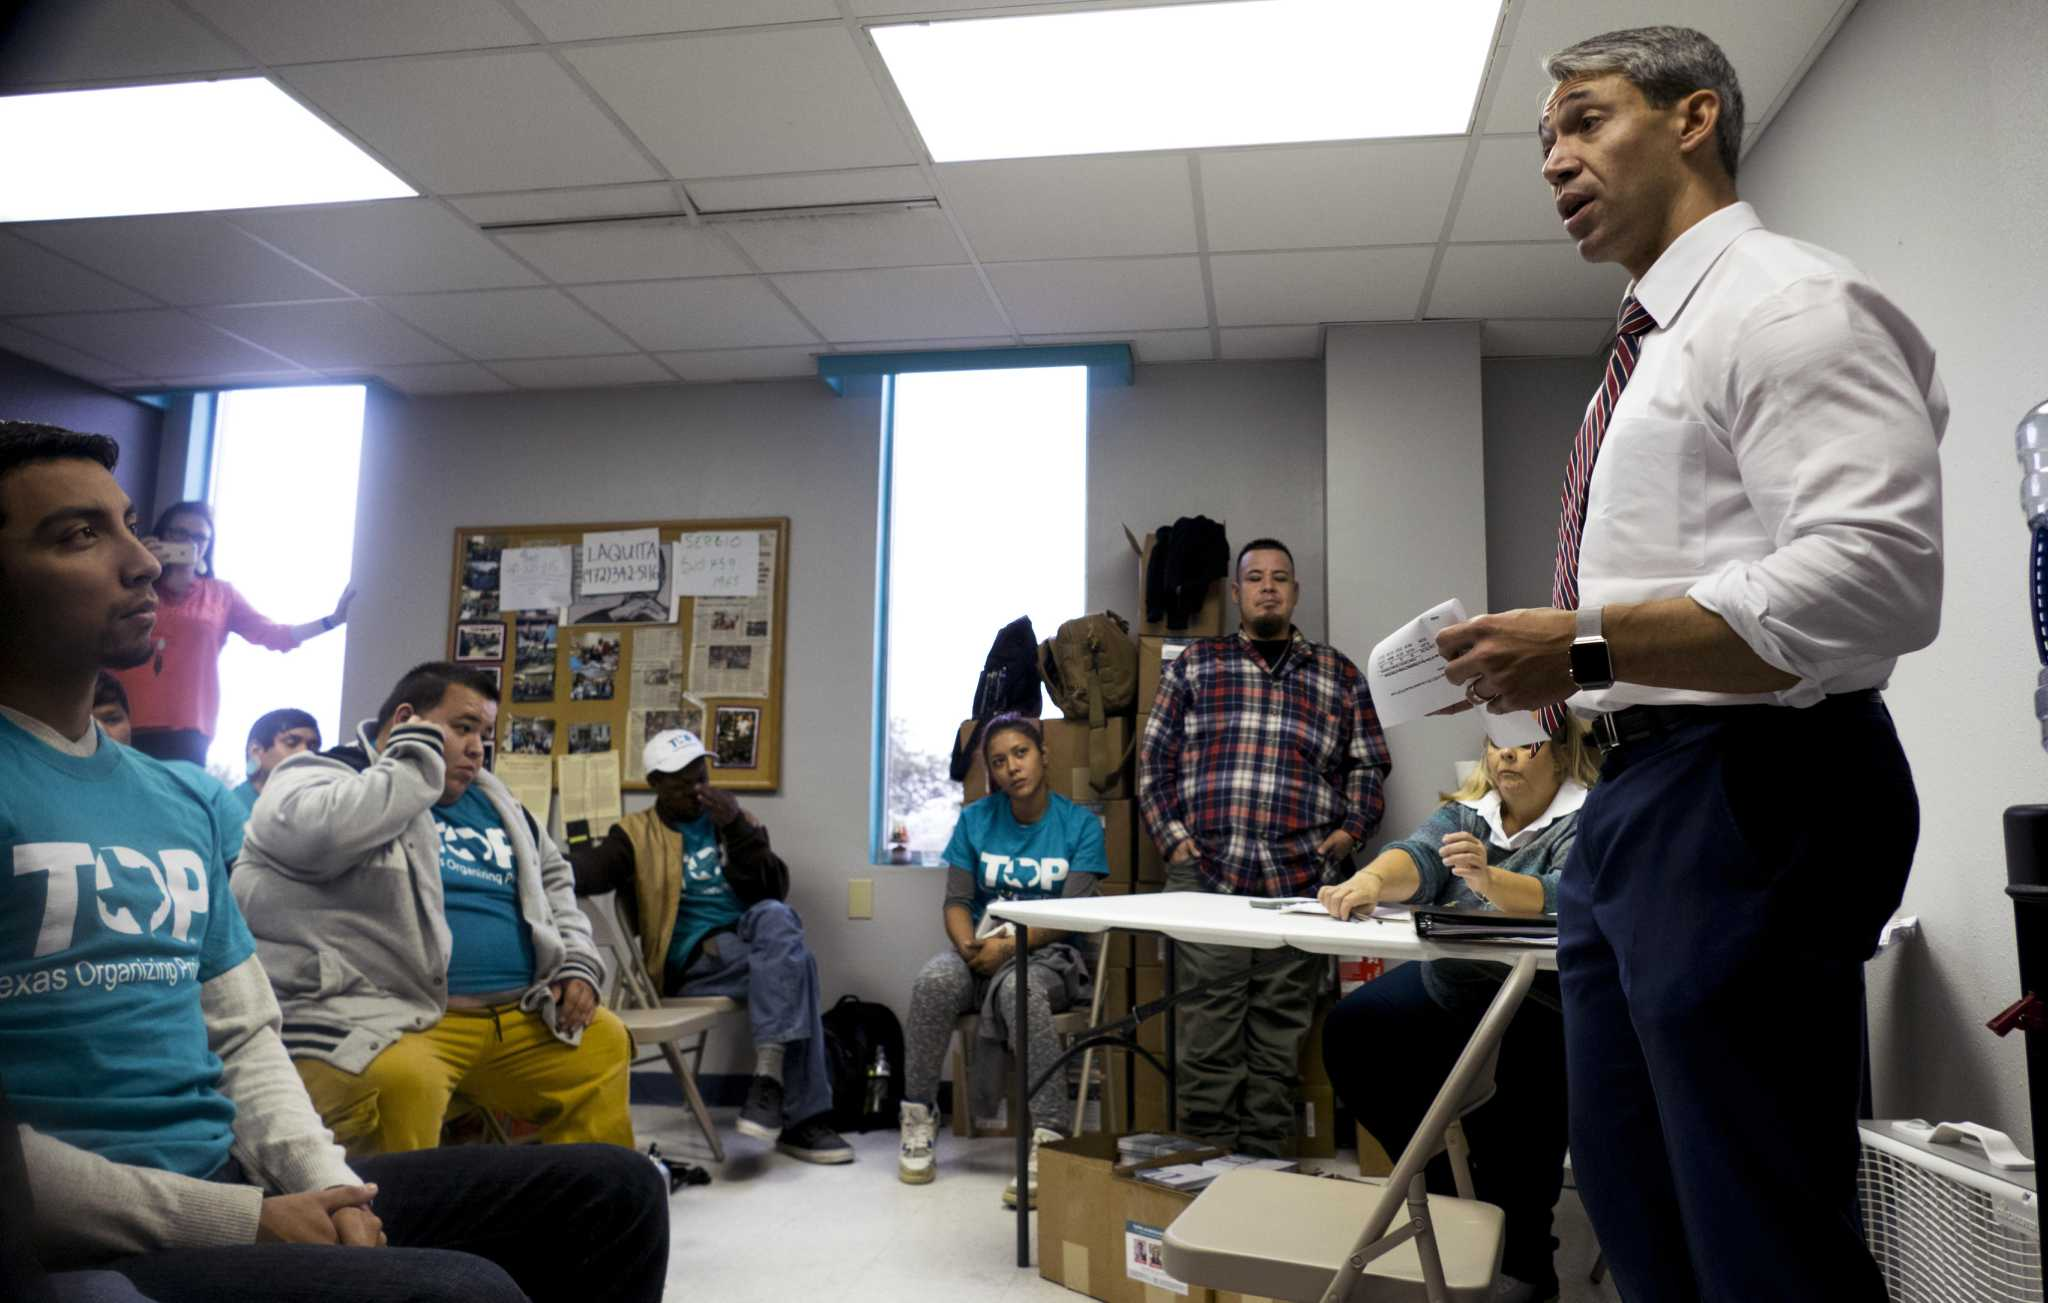 Two heavy hitters agree to support San Antonio Mayor Nirenberg in hotly contested runoff